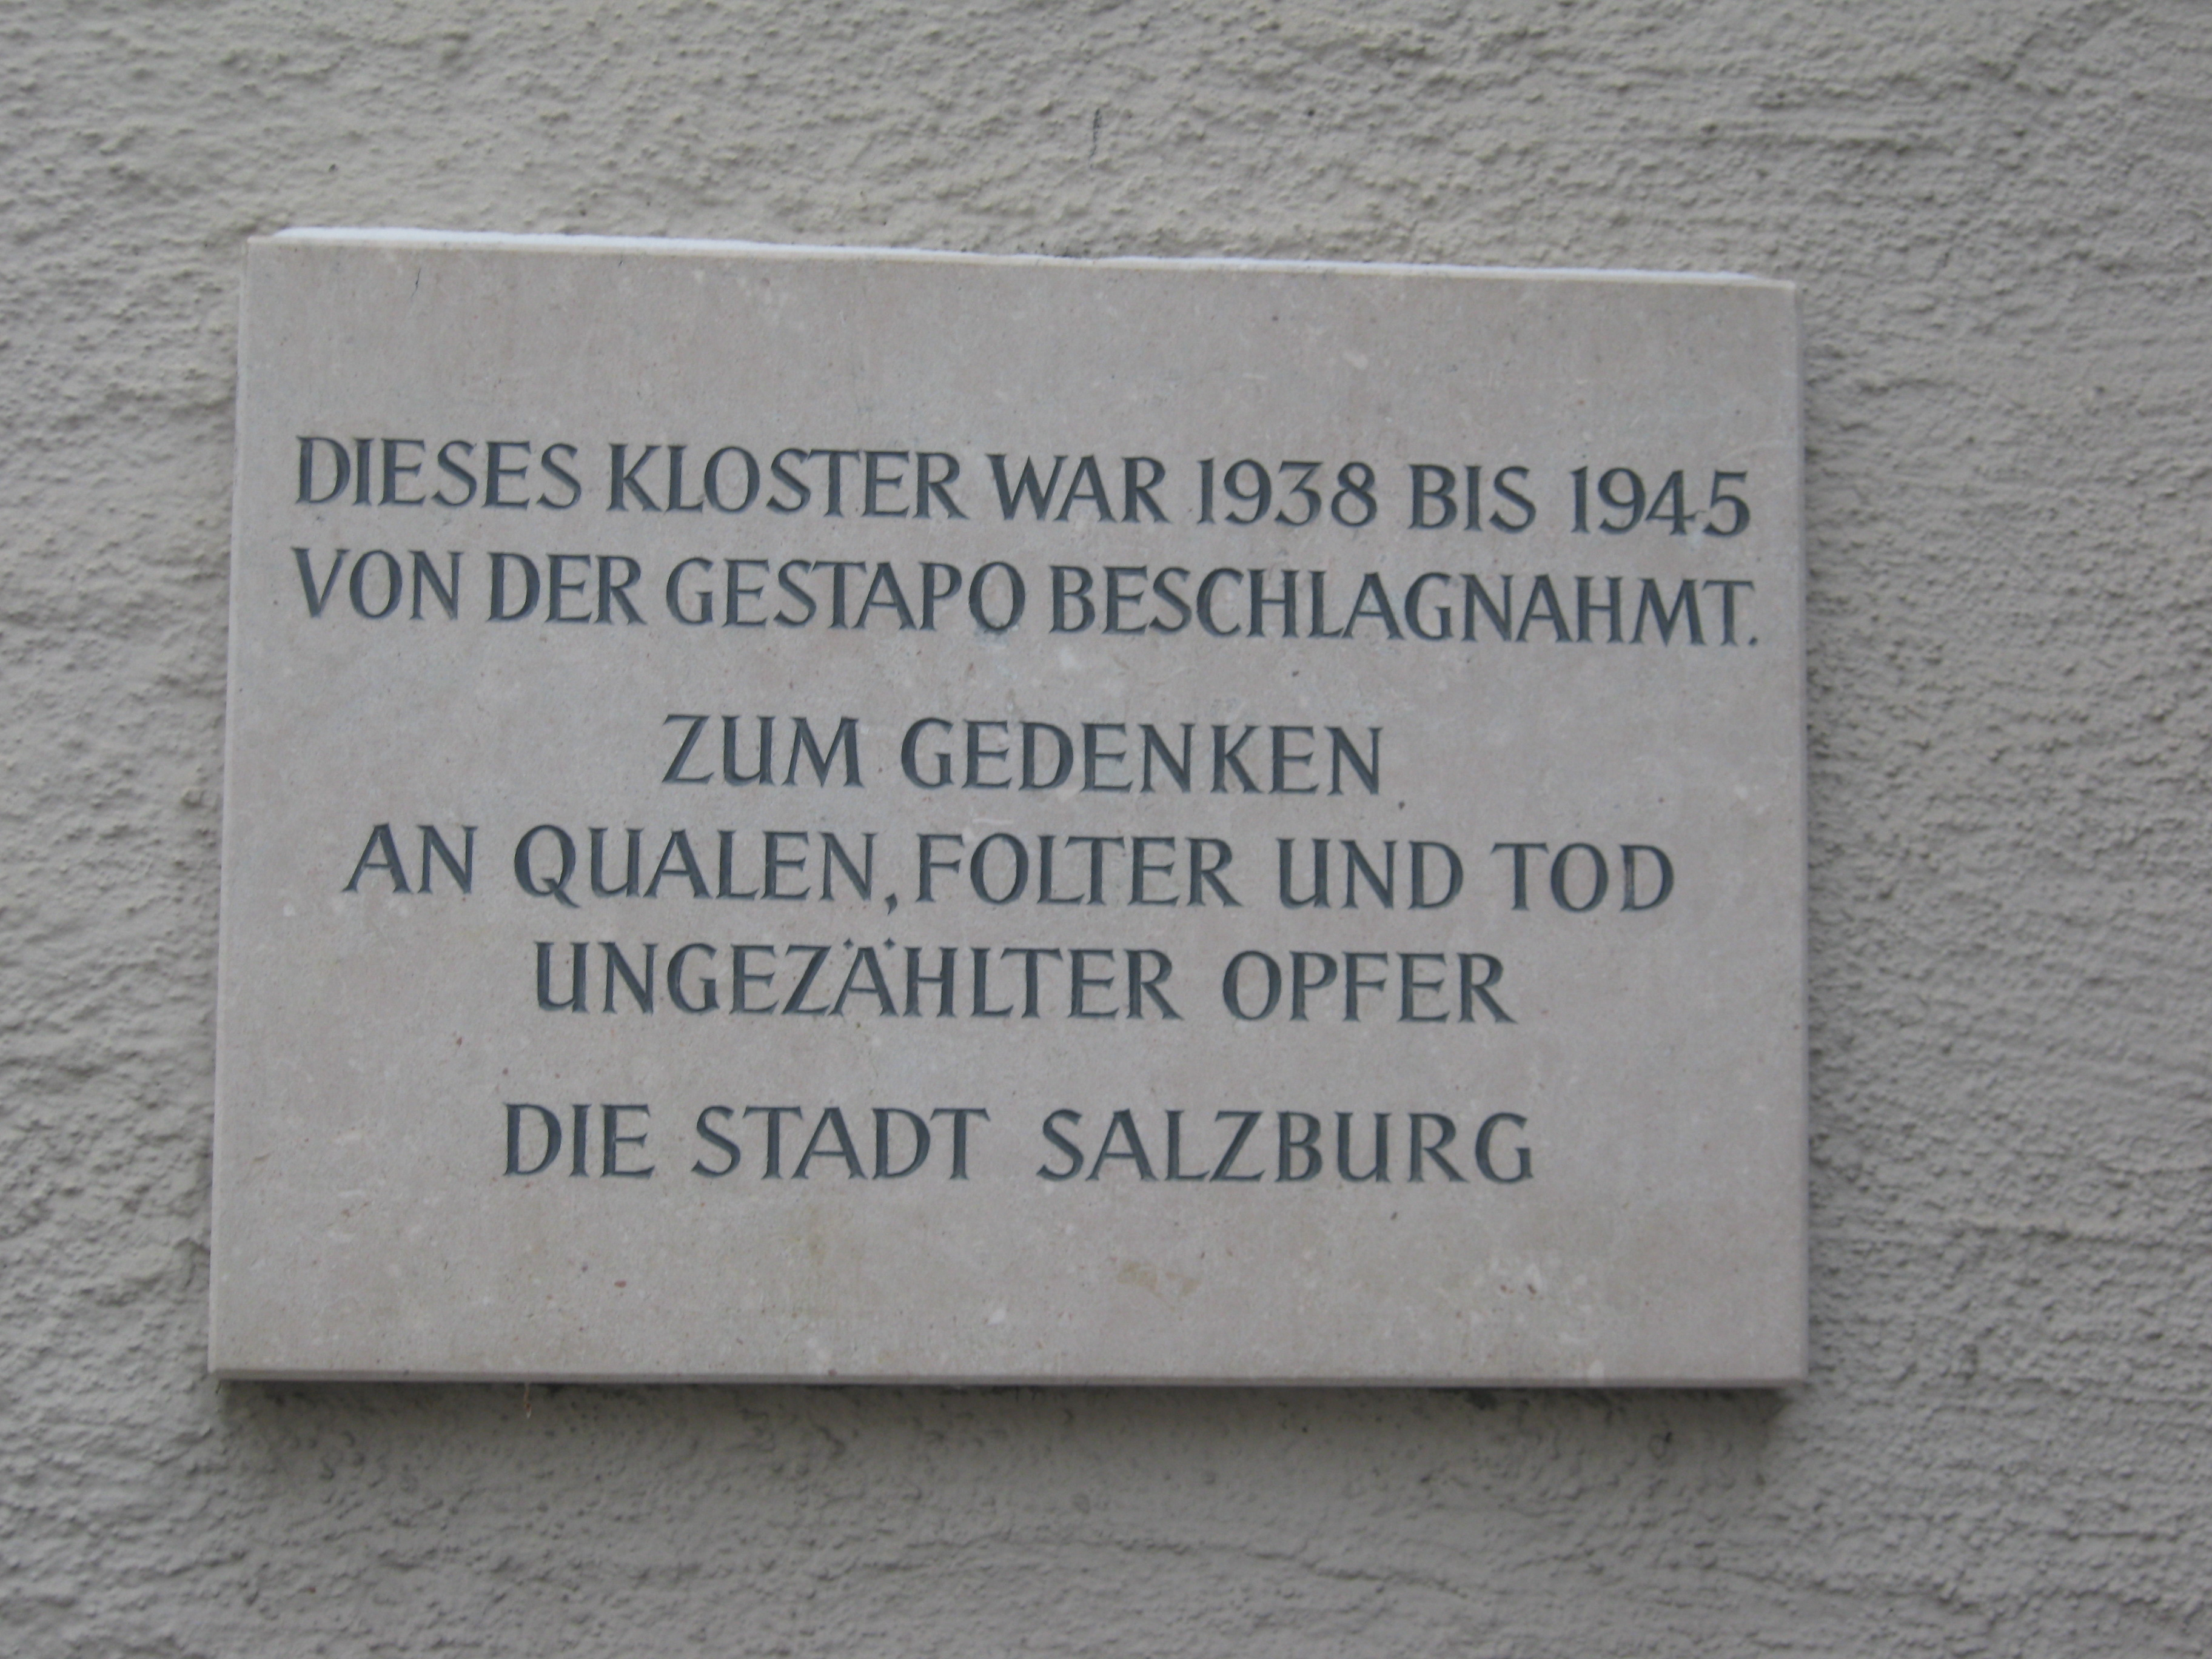 Memorial for the victims of the Gestapo at the Franciscan Cloister<br>Photo: Andrea Loidl